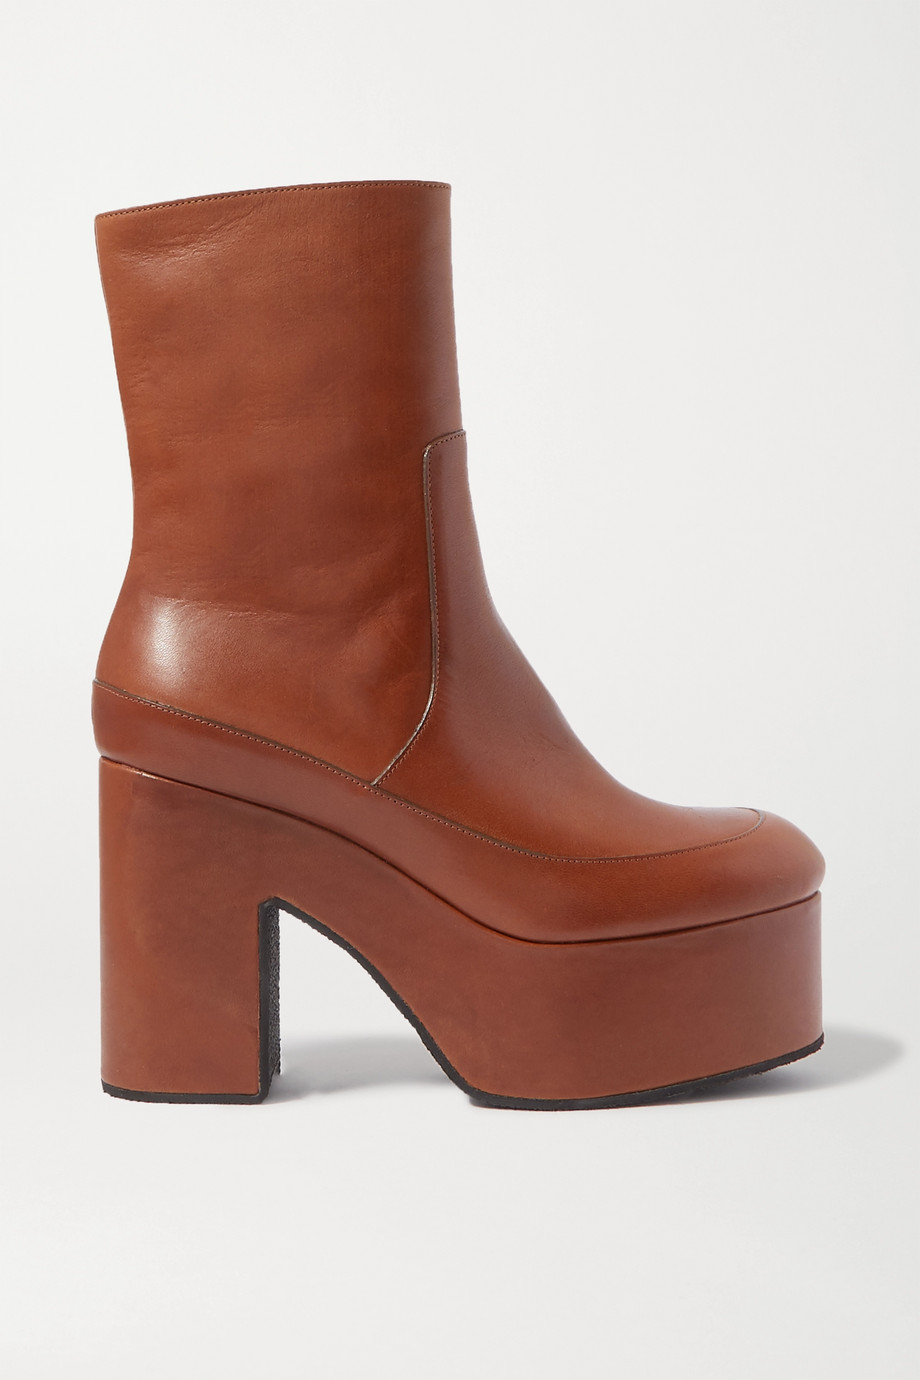 Dries Van Noten Leather platform ankle boots